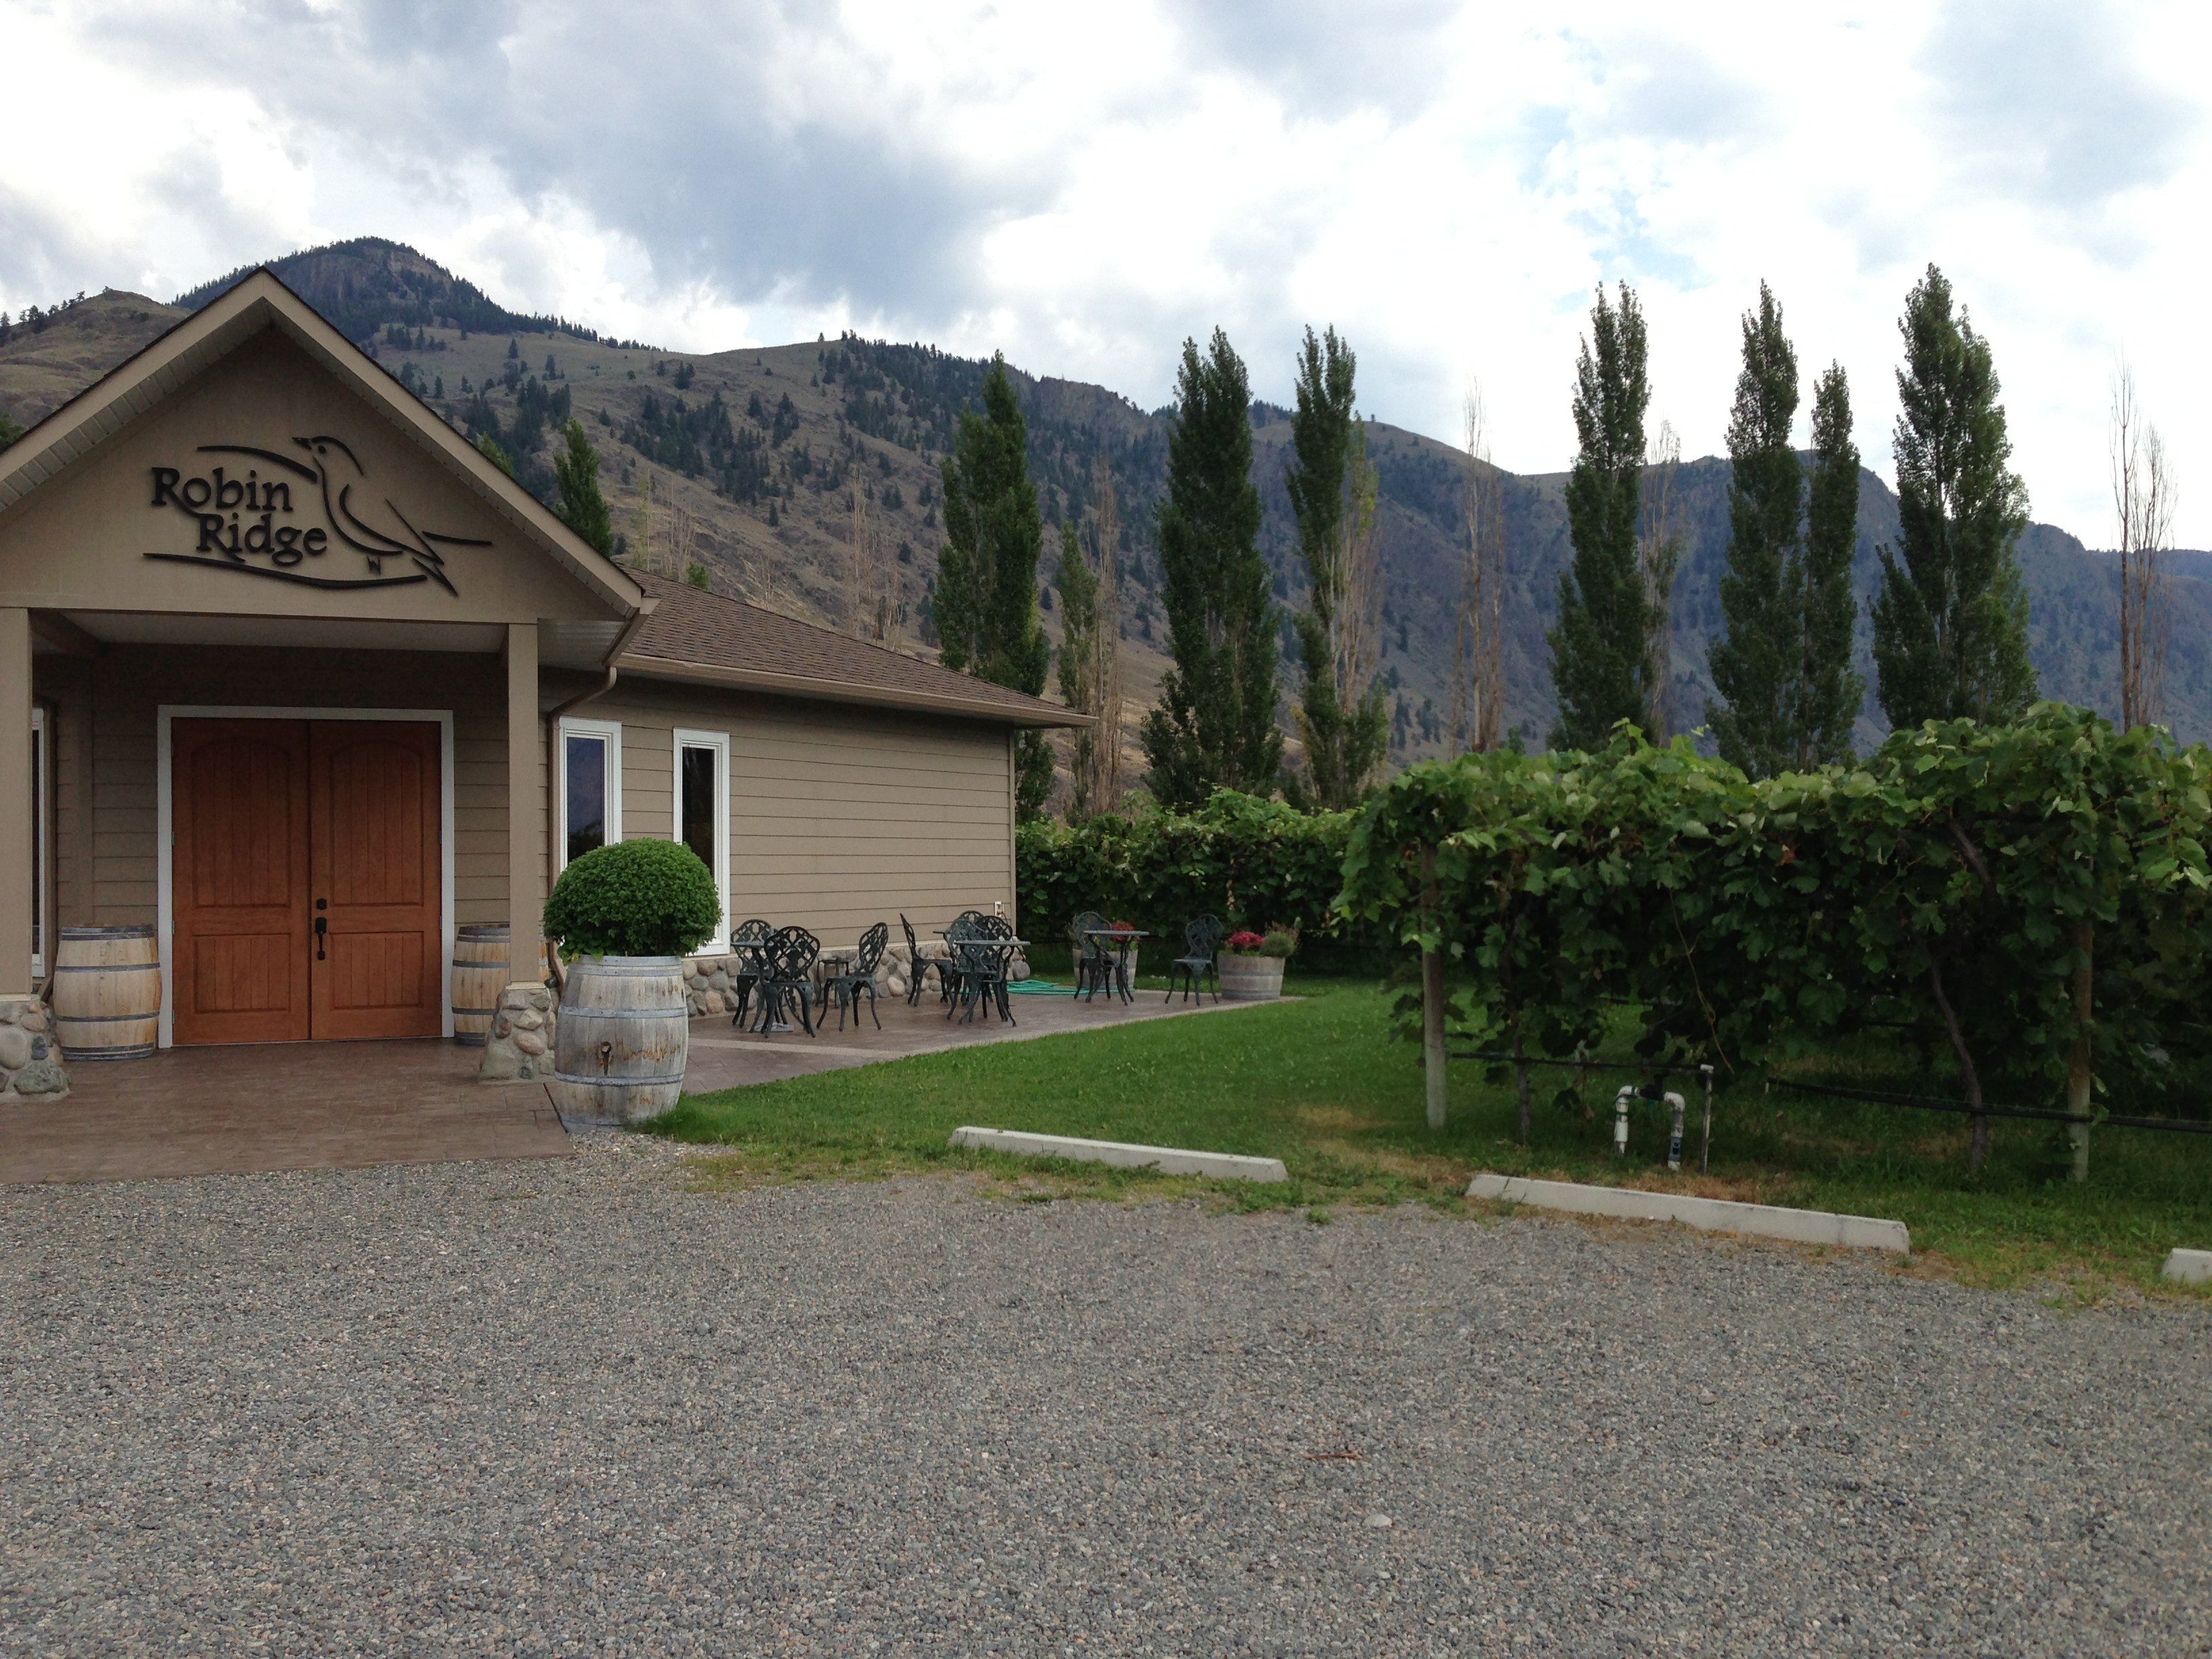 Robin's Ridge Winery, Keremeos, BC